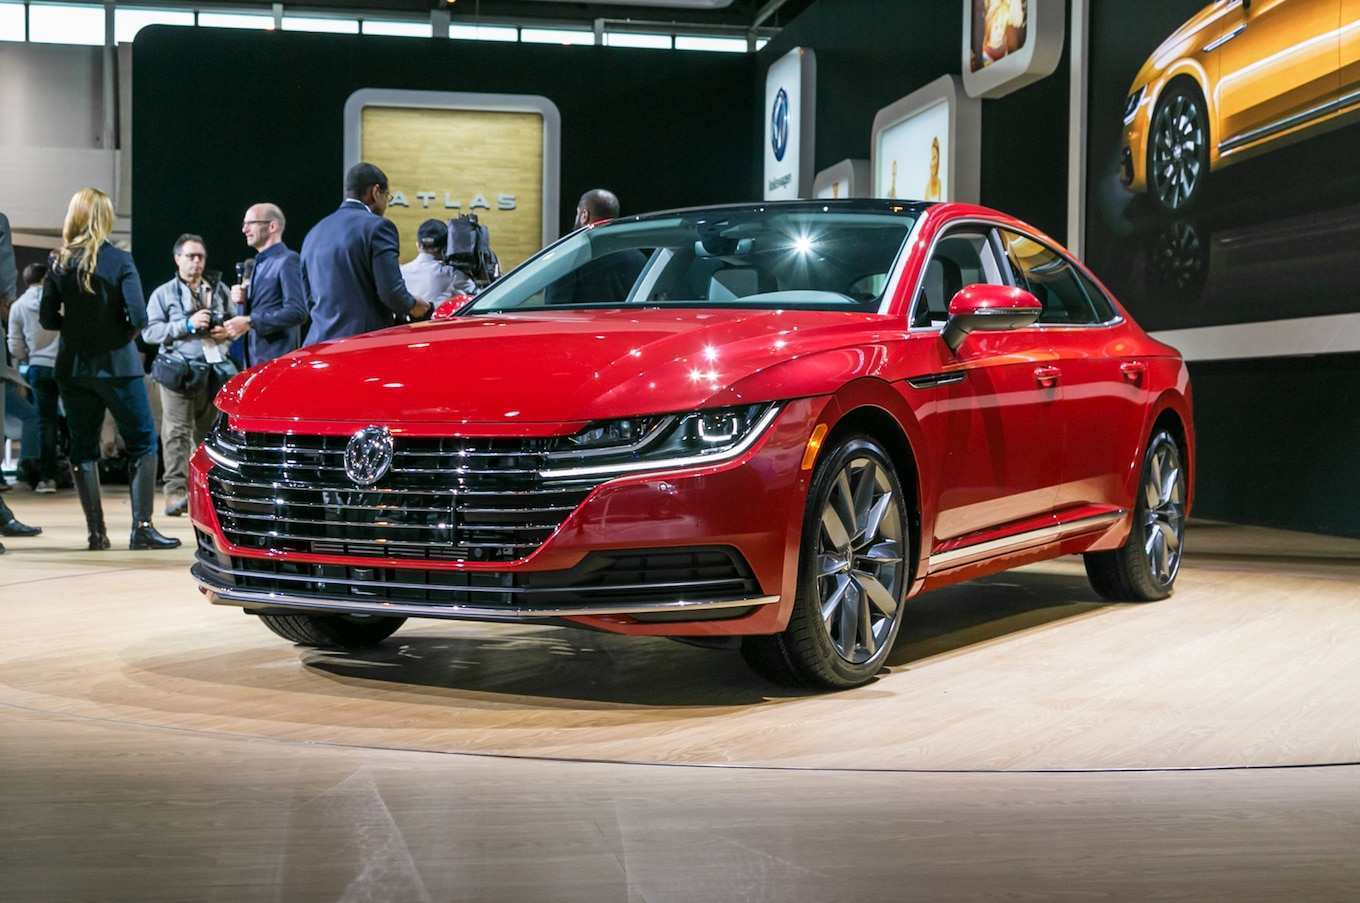 87 All New 2019 Vw Arteon Picture for 2019 Vw Arteon